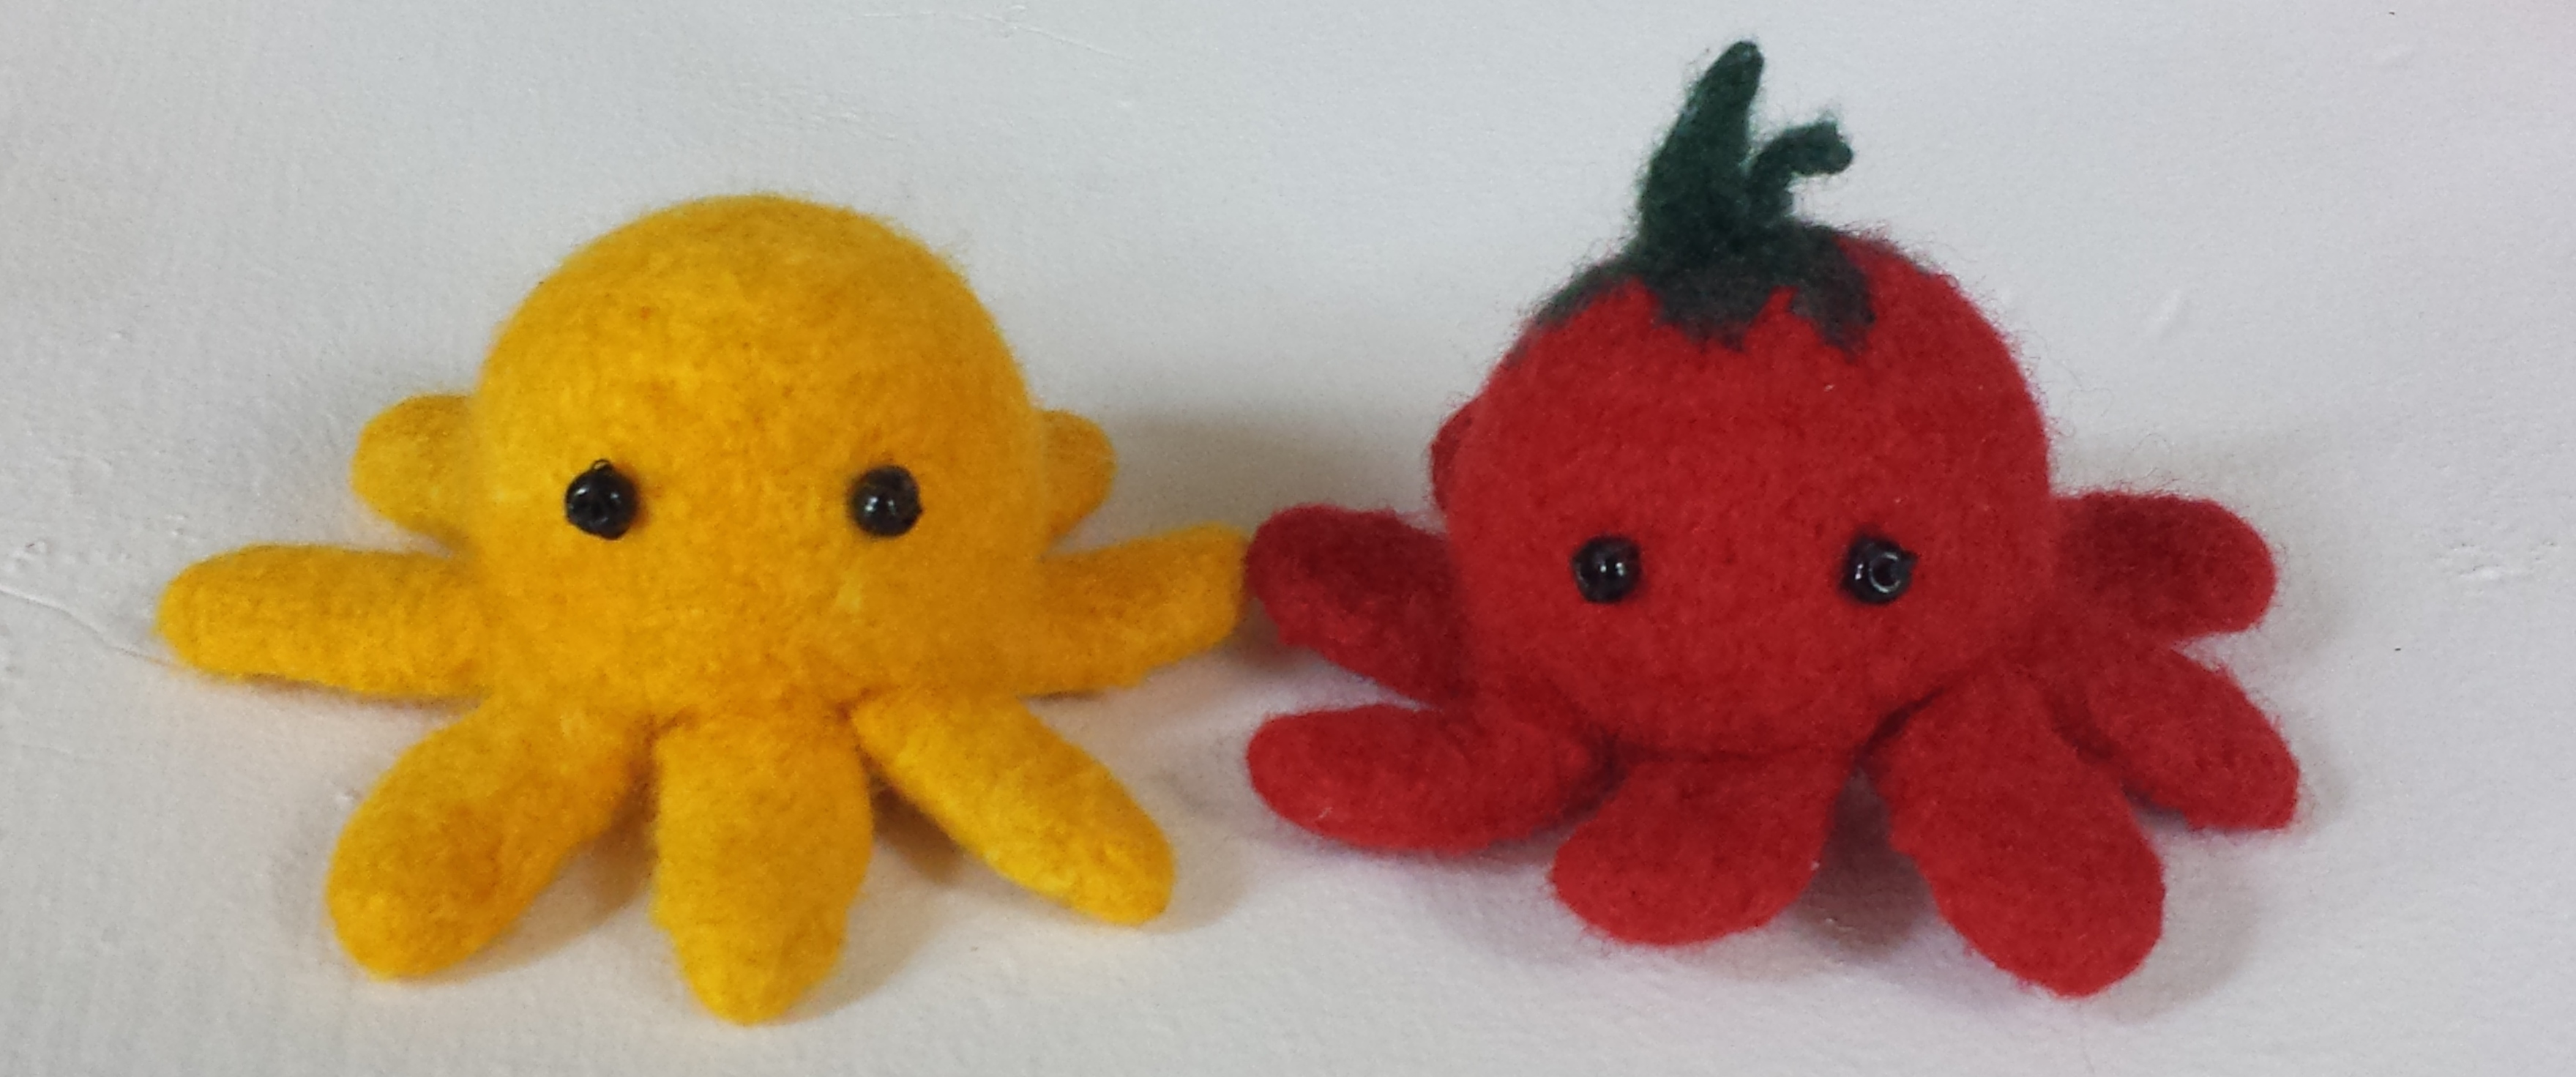 lemon and tomato holding hands